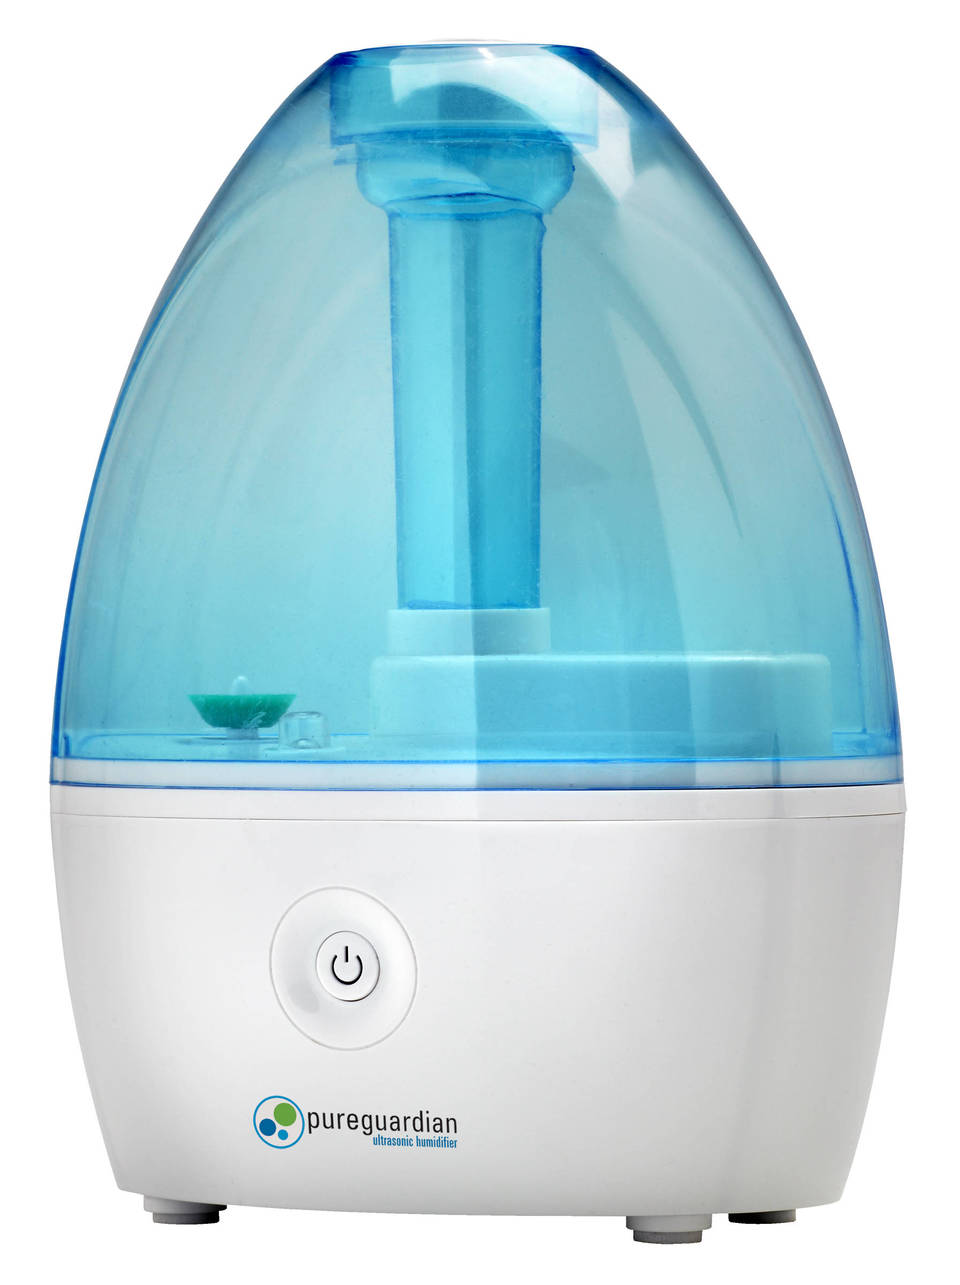 Small Humidifiers Bedroom Pureguardian H965 70 Hour Ultrasonic Cool Mist Humidifier Table